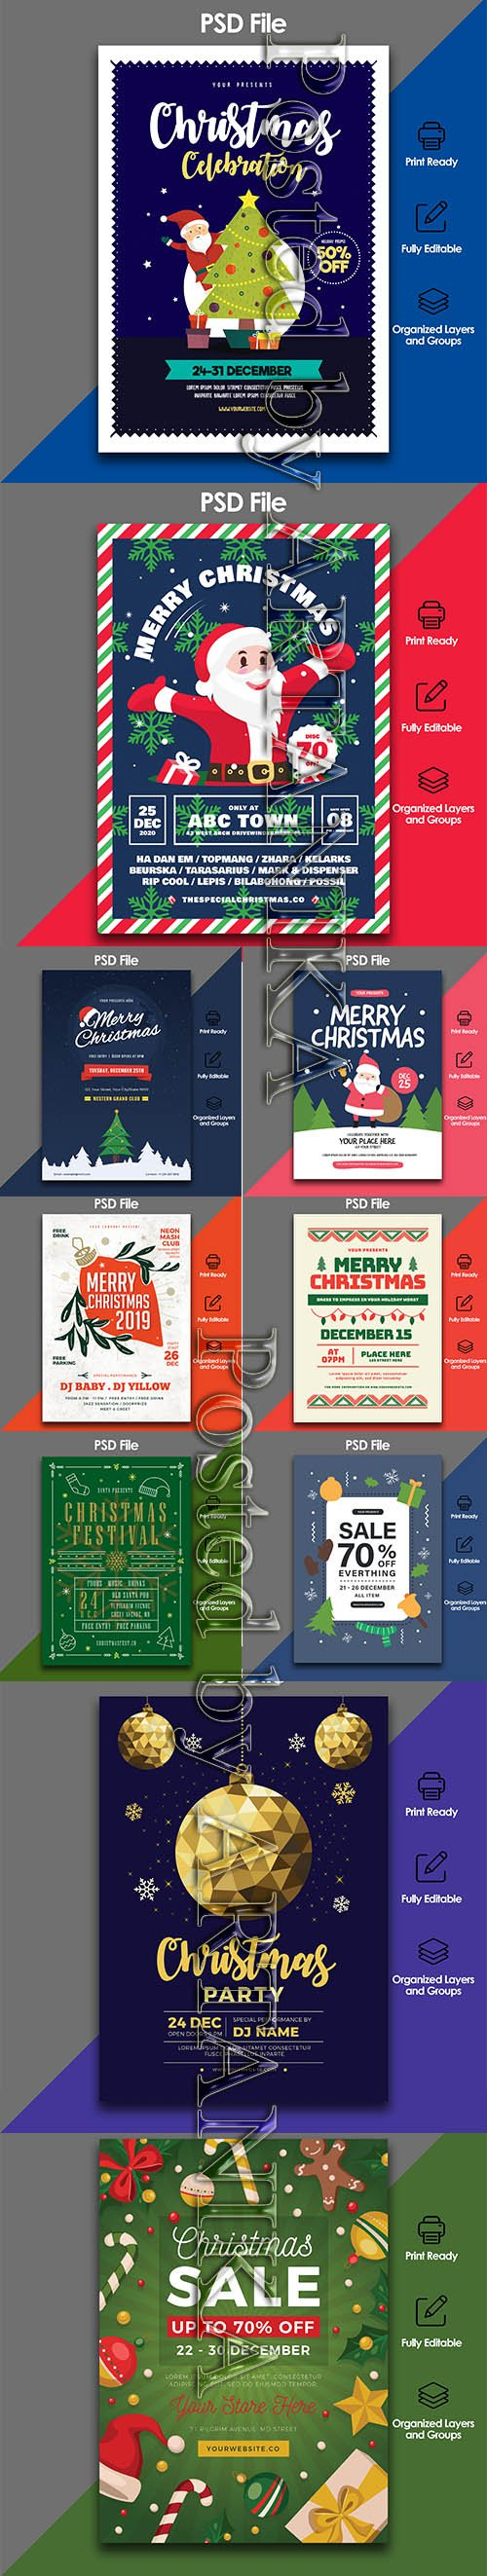 Christmas Celebration Flyer PSD Template Pack